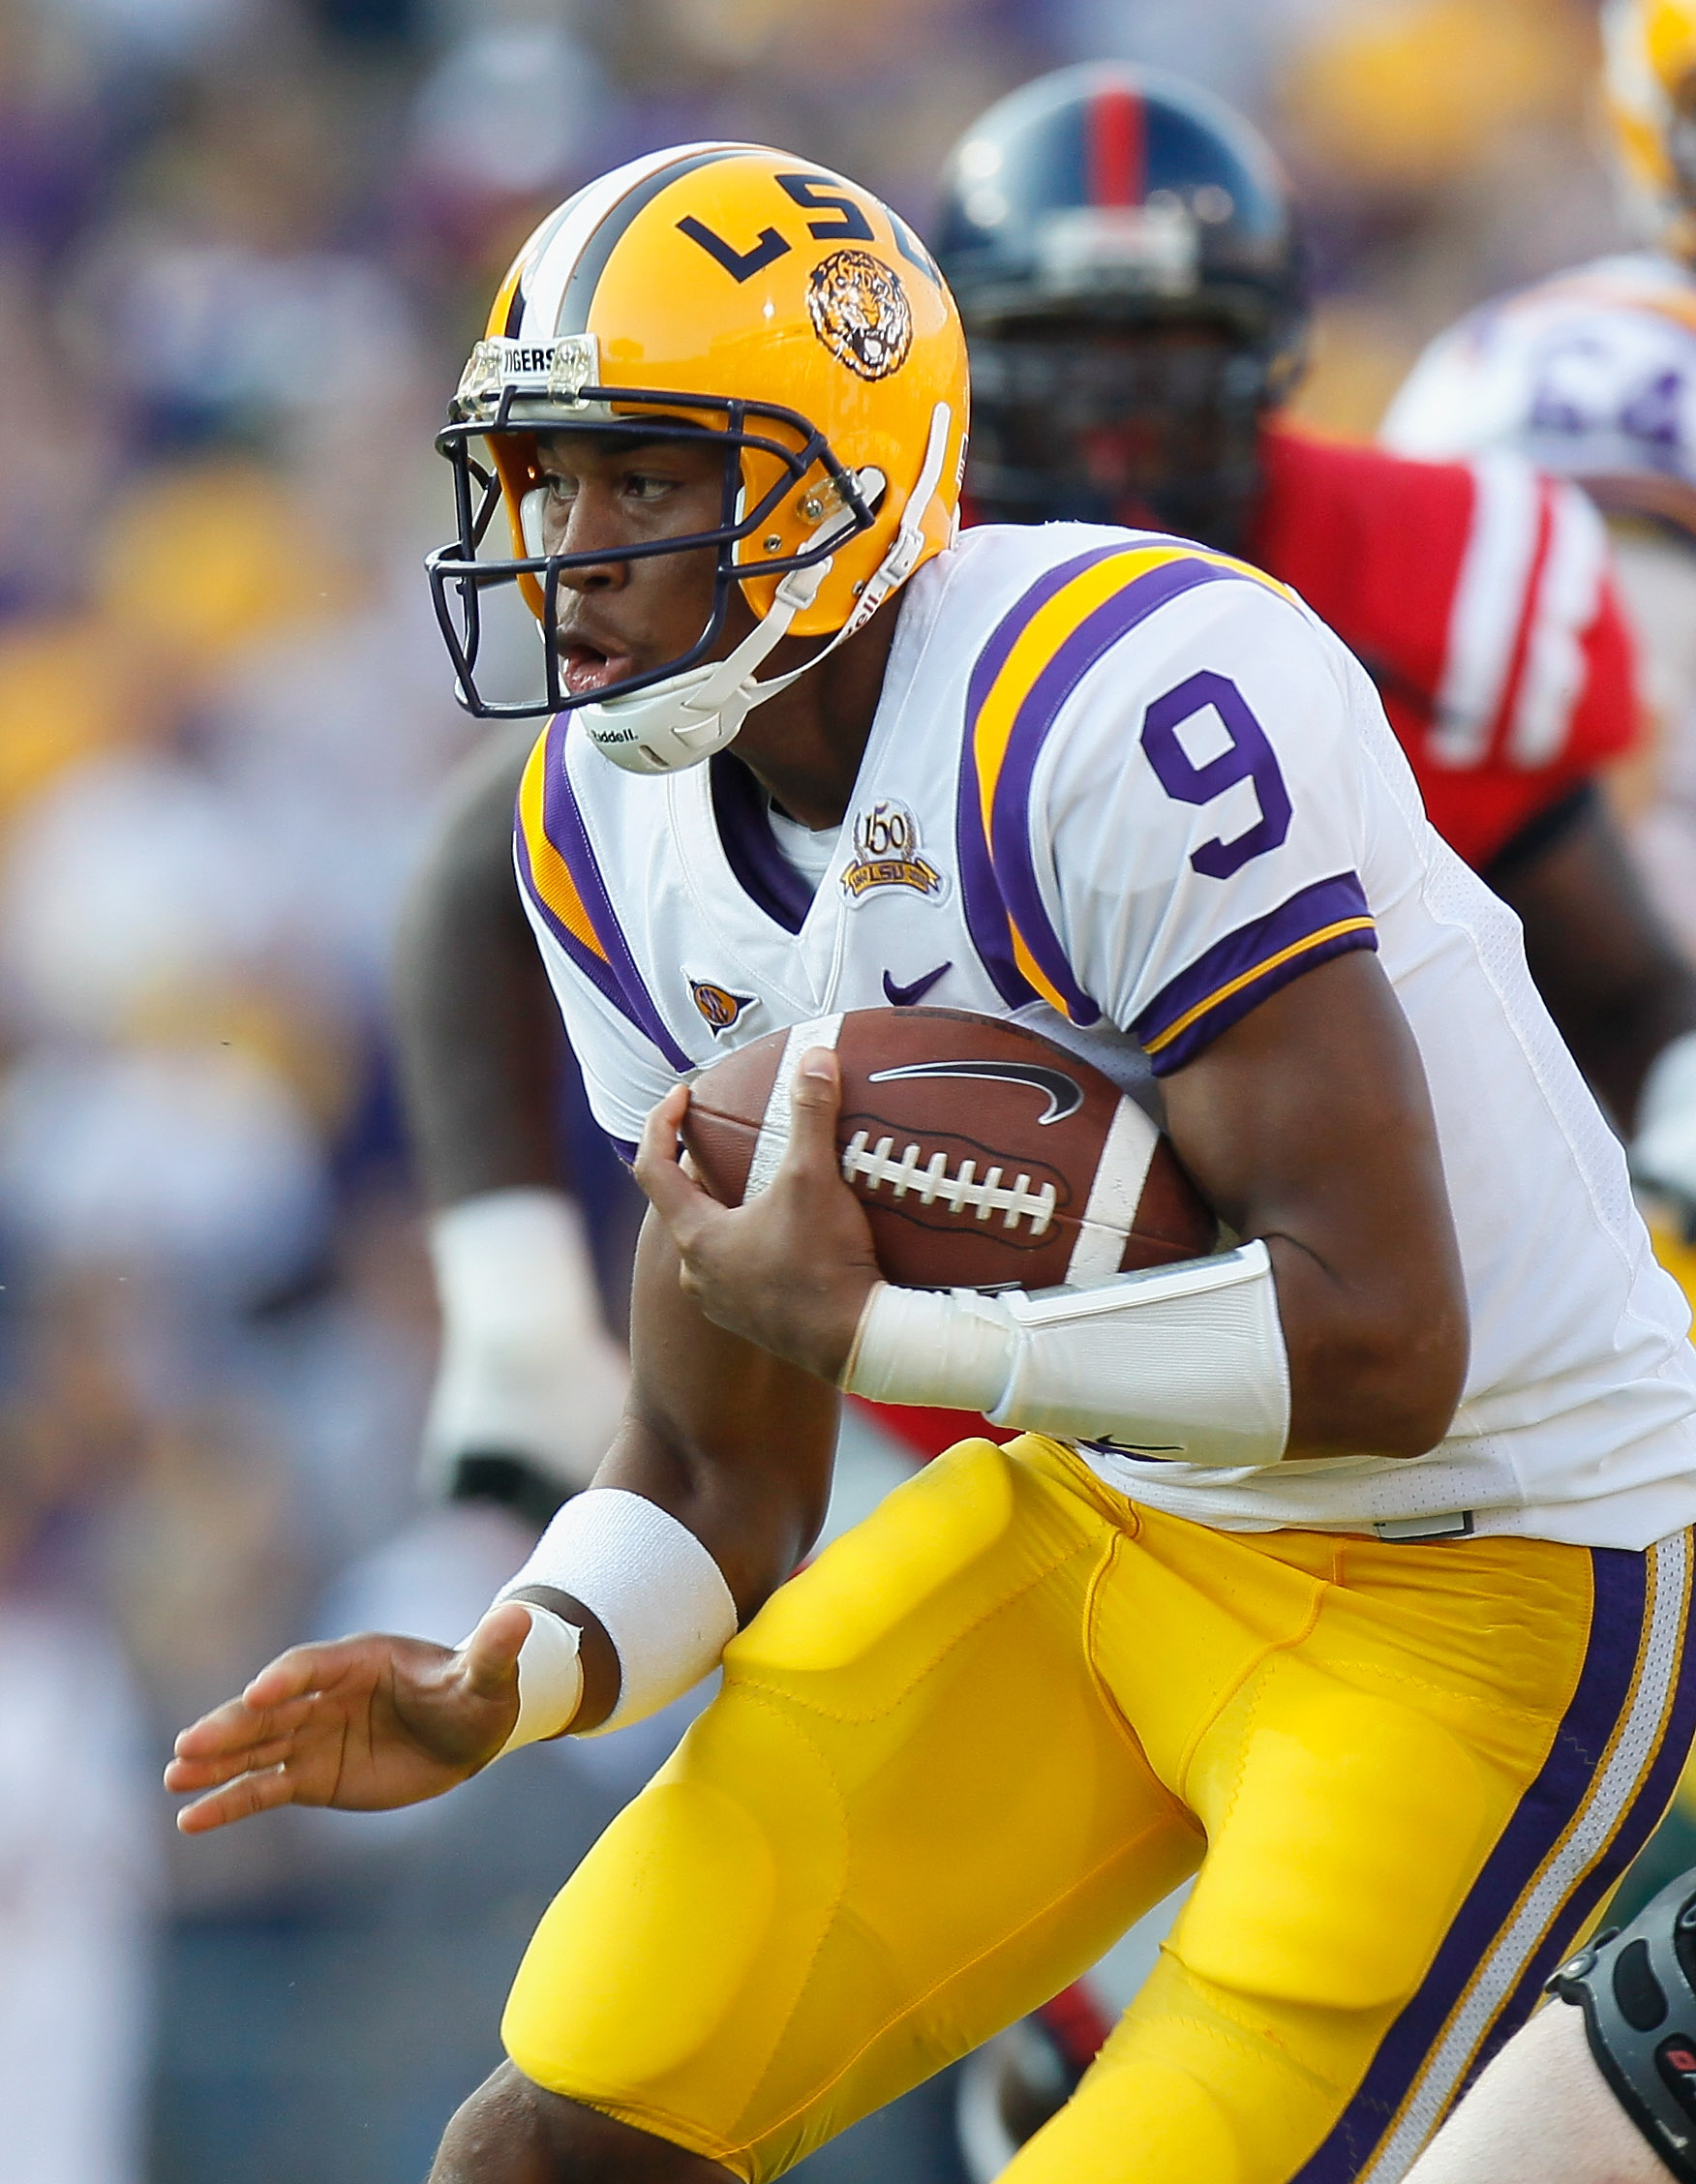 BATON ROUGE, LA - NOVEMBER 20:  Quarterback Jordan Jefferson #9 of the Louisiana State University Tigers against the Ole Miss Rebels at Tiger Stadium on November 20, 2010 in Baton Rouge, Louisiana.  (Photo by Kevin C. Cox/Getty Images)